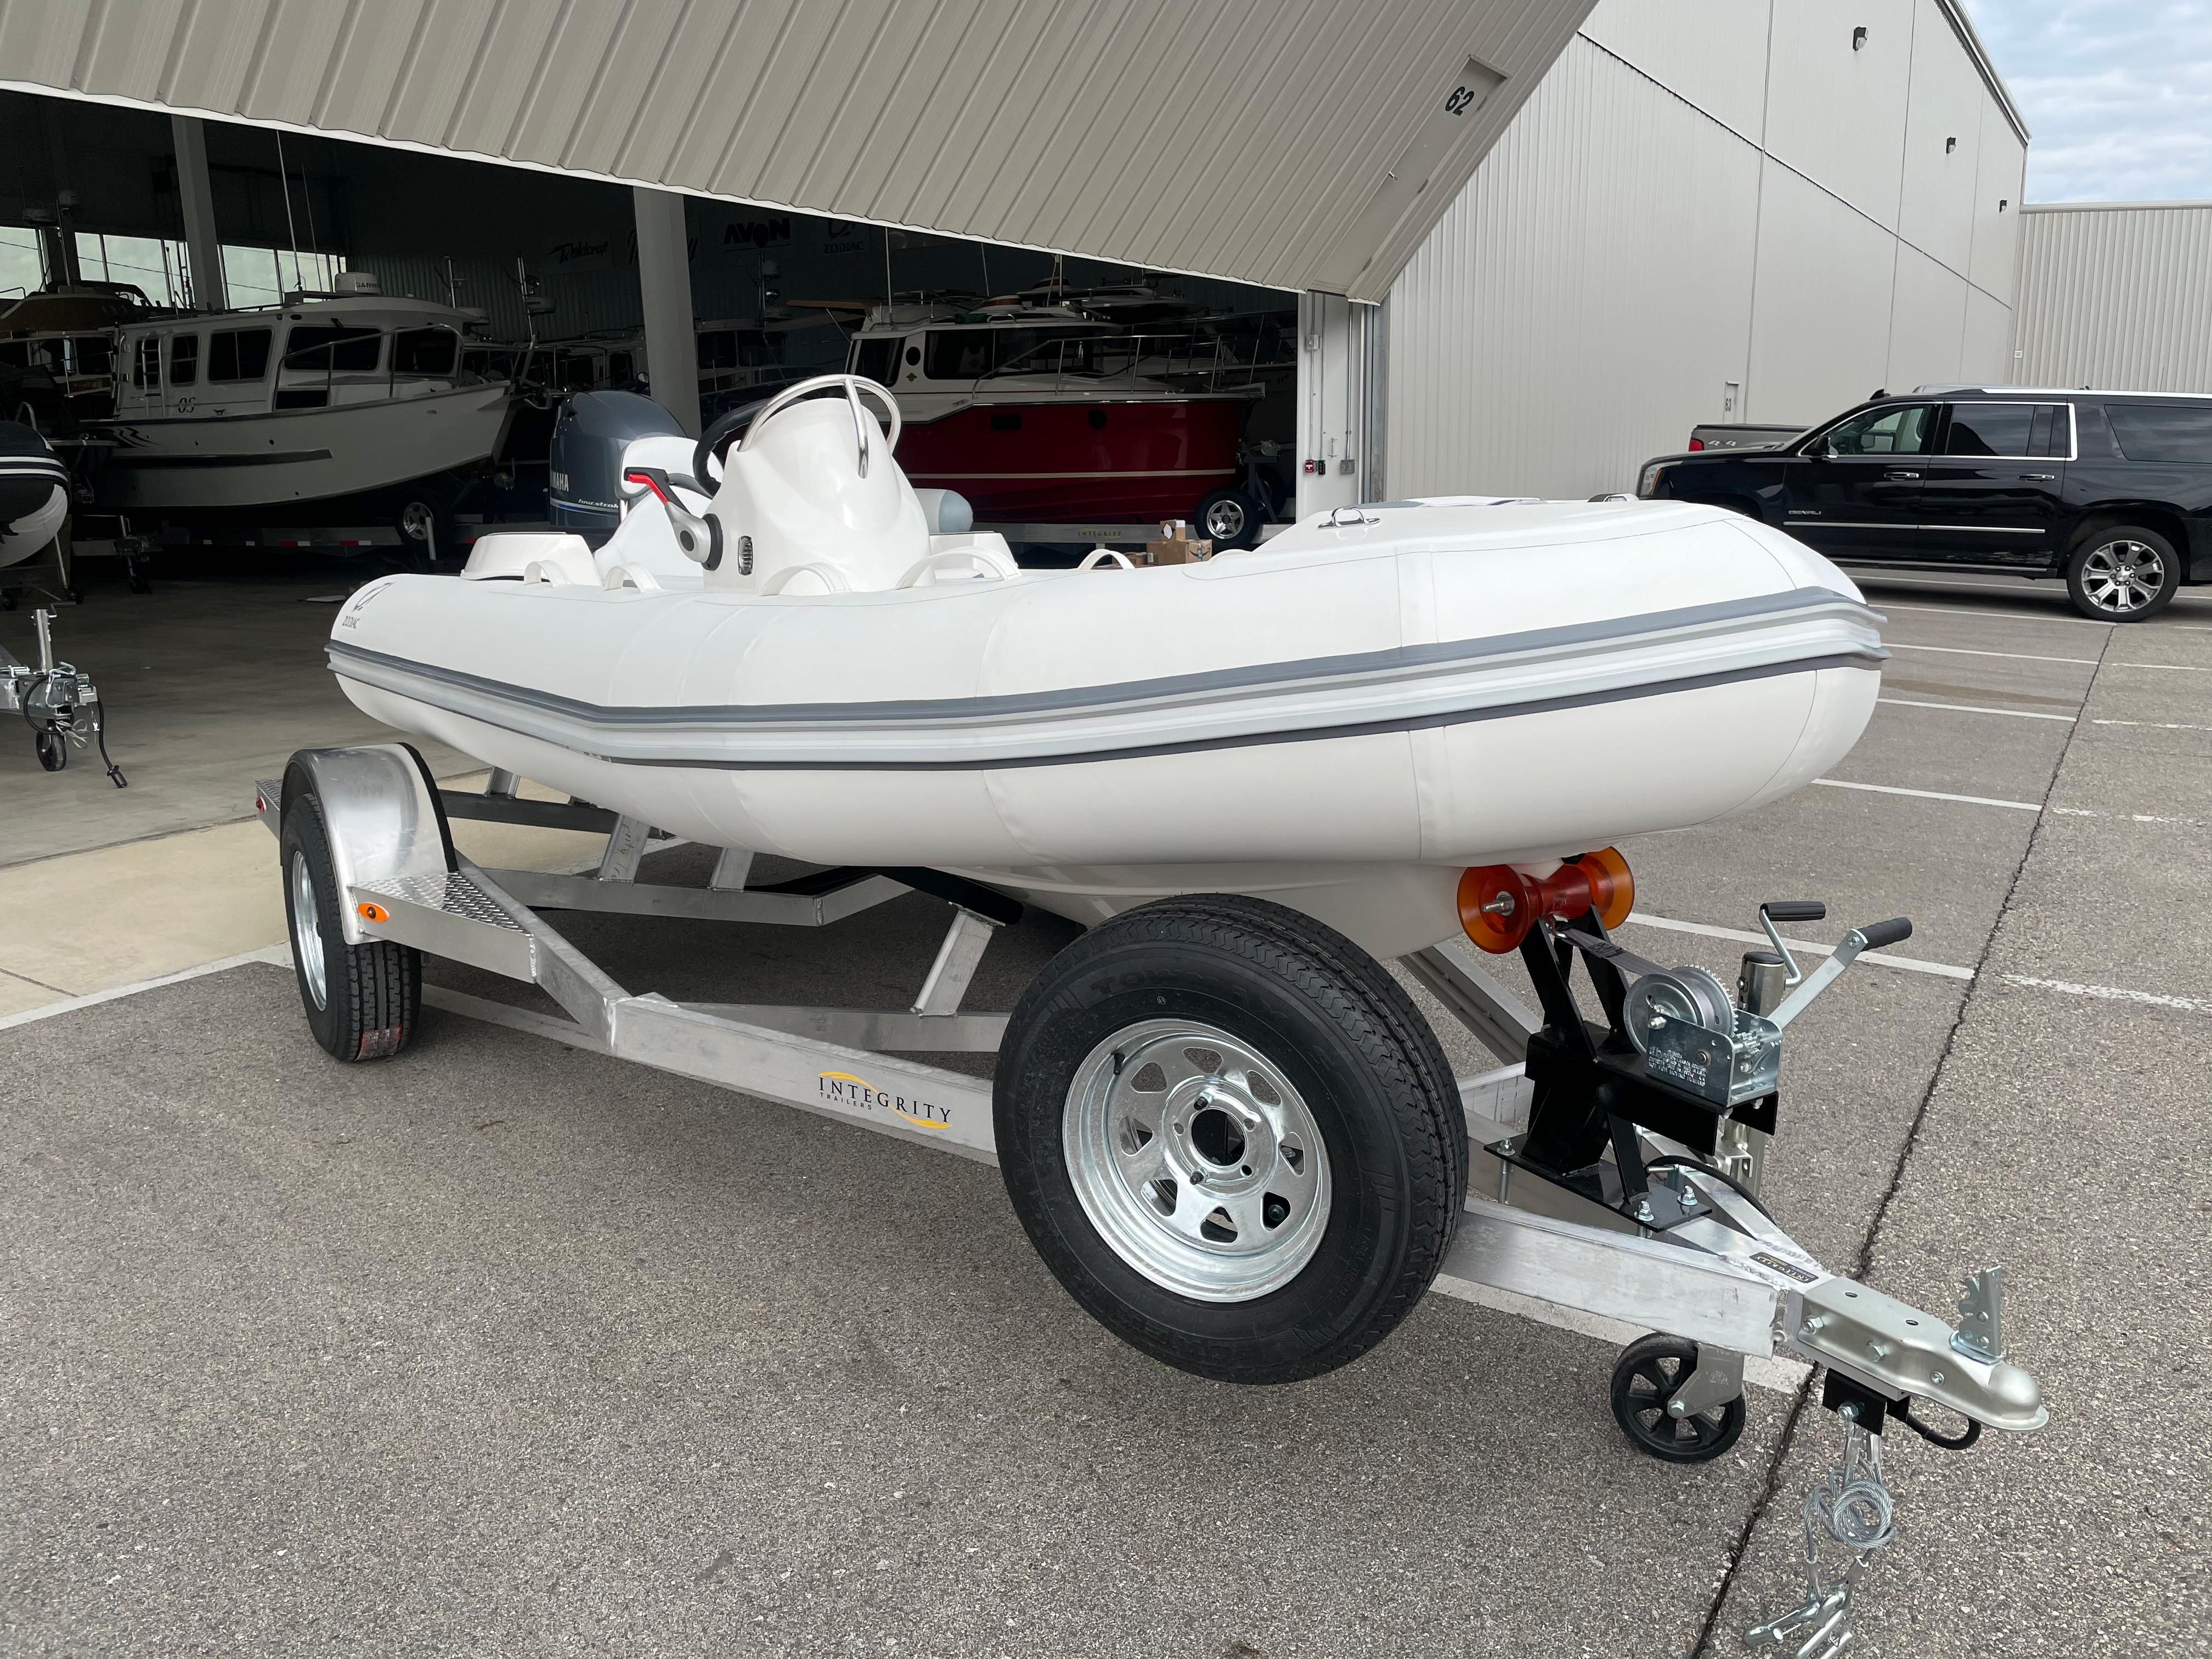 2022 Zodiac Yachtline 440 Deluxe NEO GL Edition 60hp On Order, Image 3